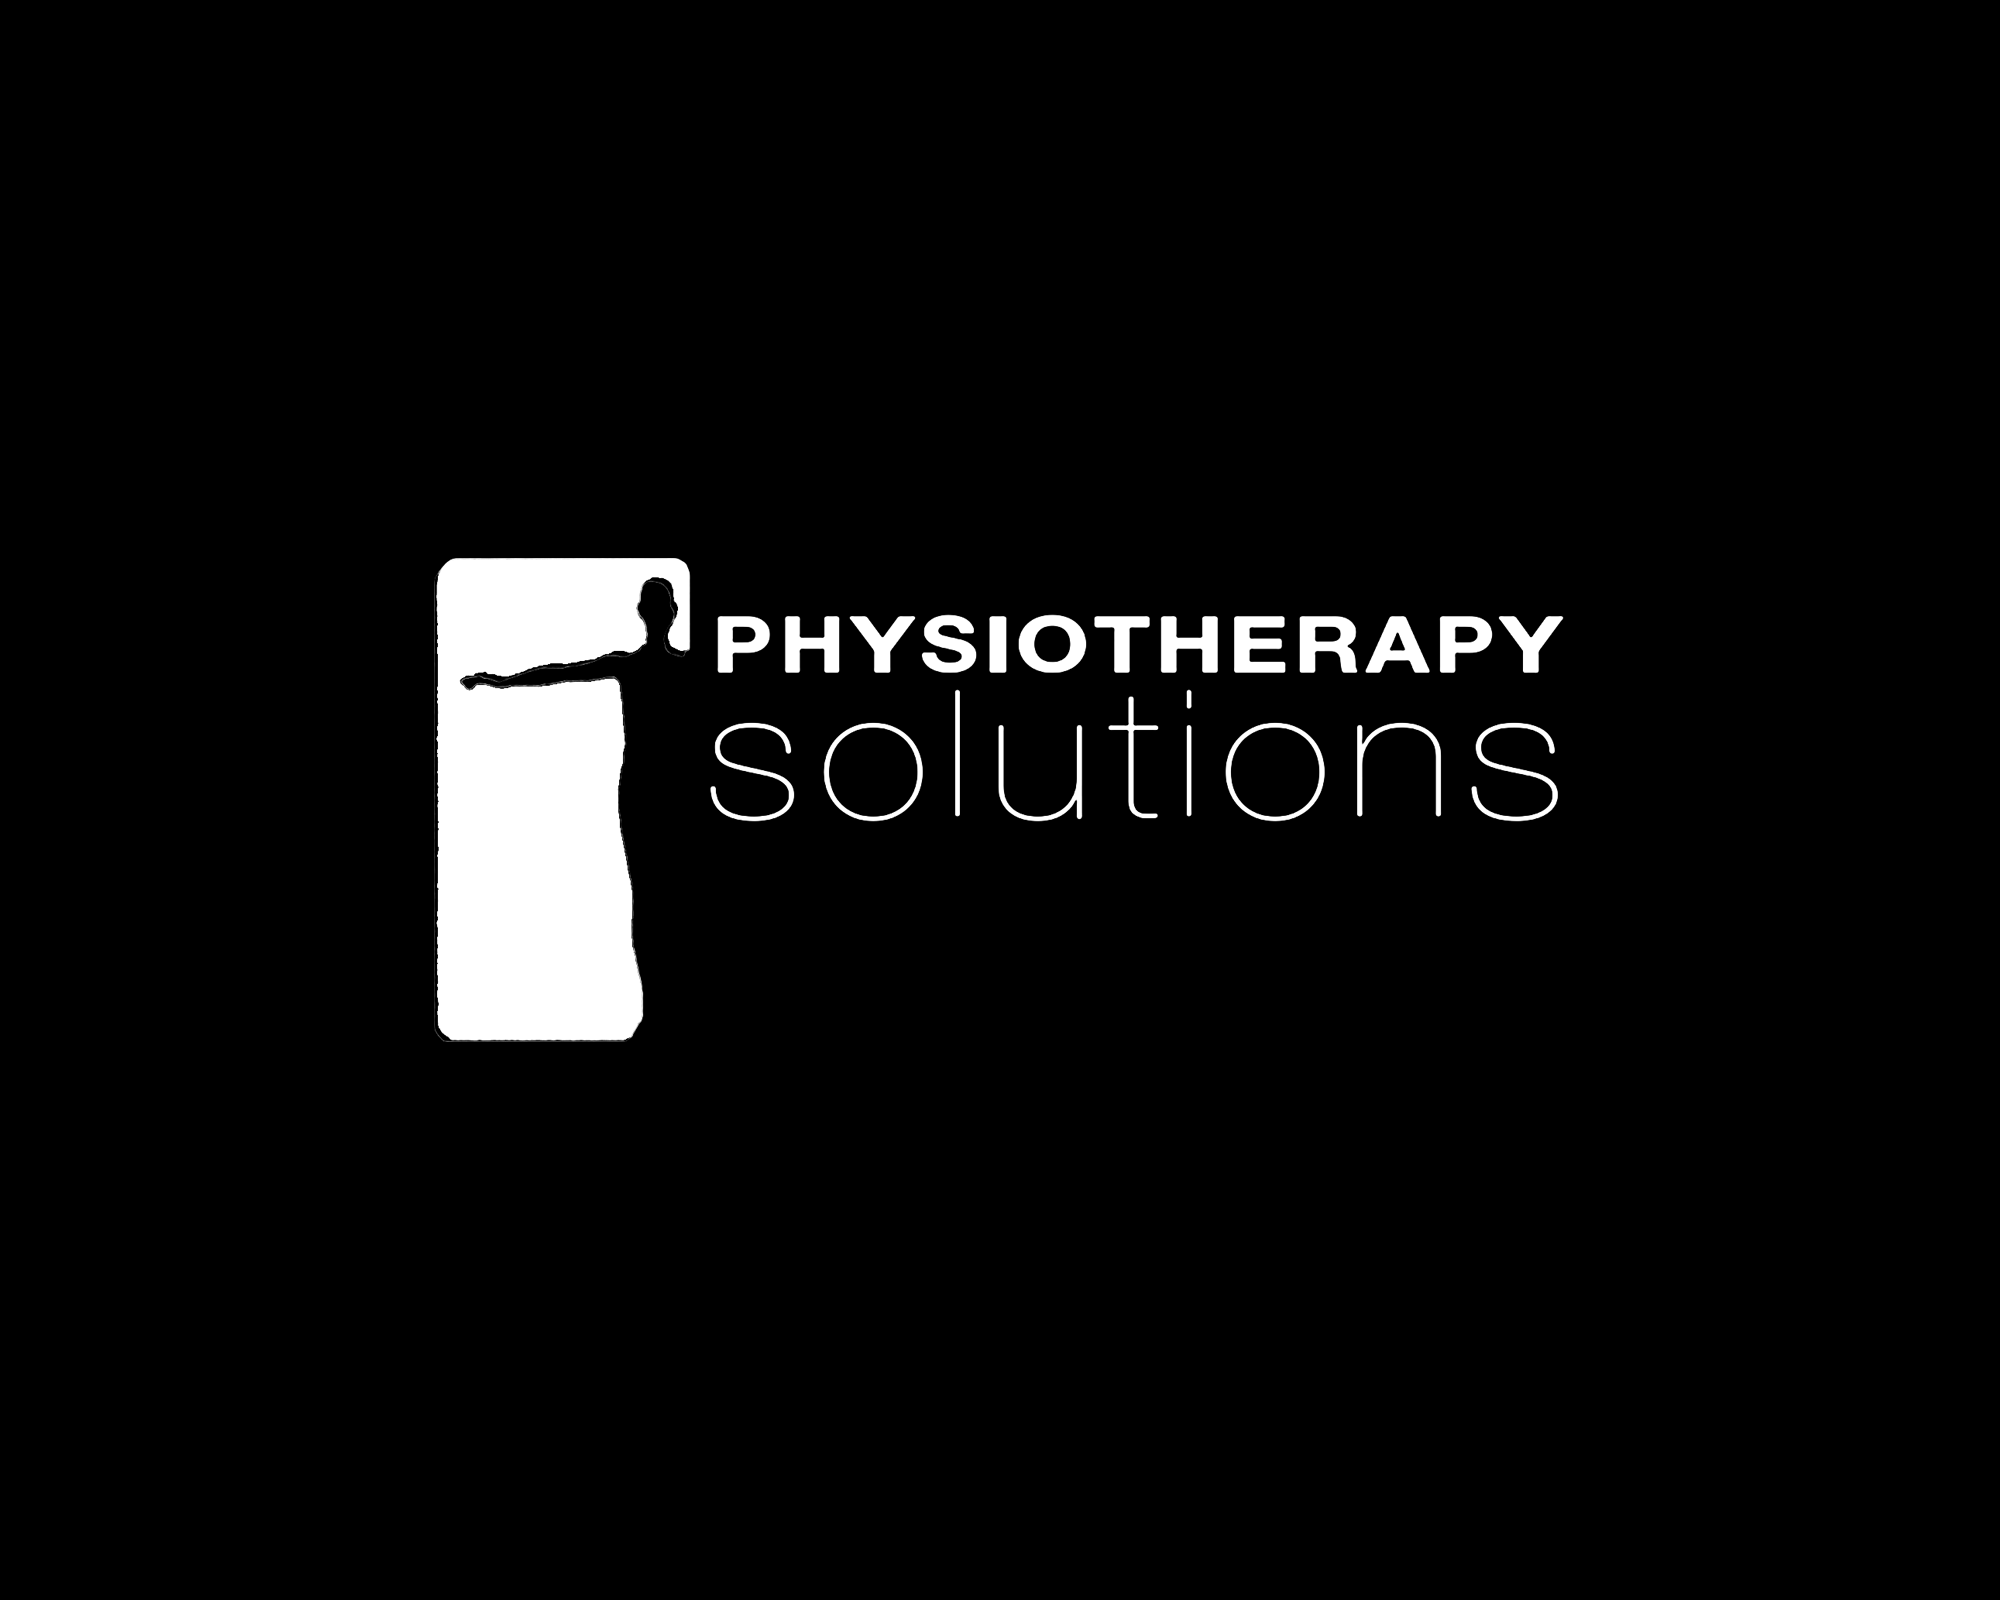 physiotherapy solutions Logo